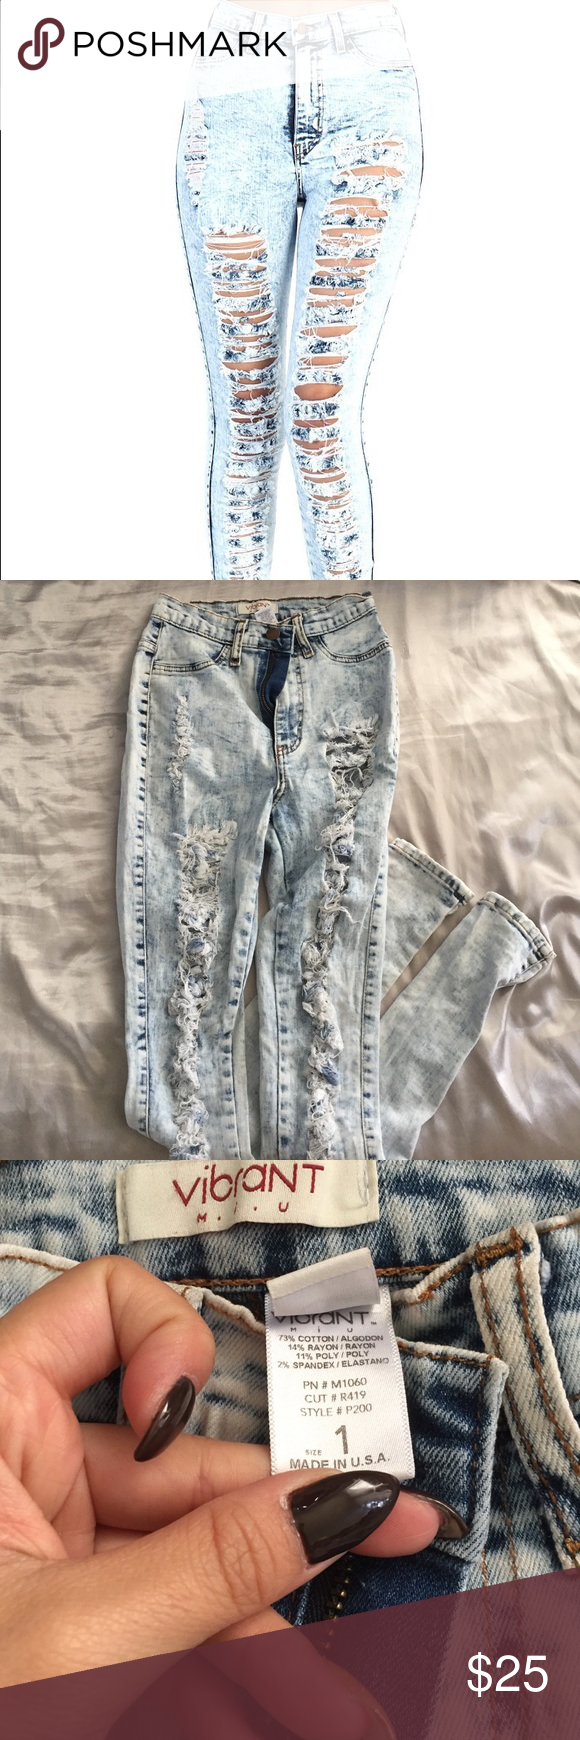 Authentic Vibrant Miu Highwaist Distressed Jeans 1 Worn twice. In perfect condition. Size 1. Very fitting and comfortable. Please make offers!!! vibrant miu Jeans Skinny